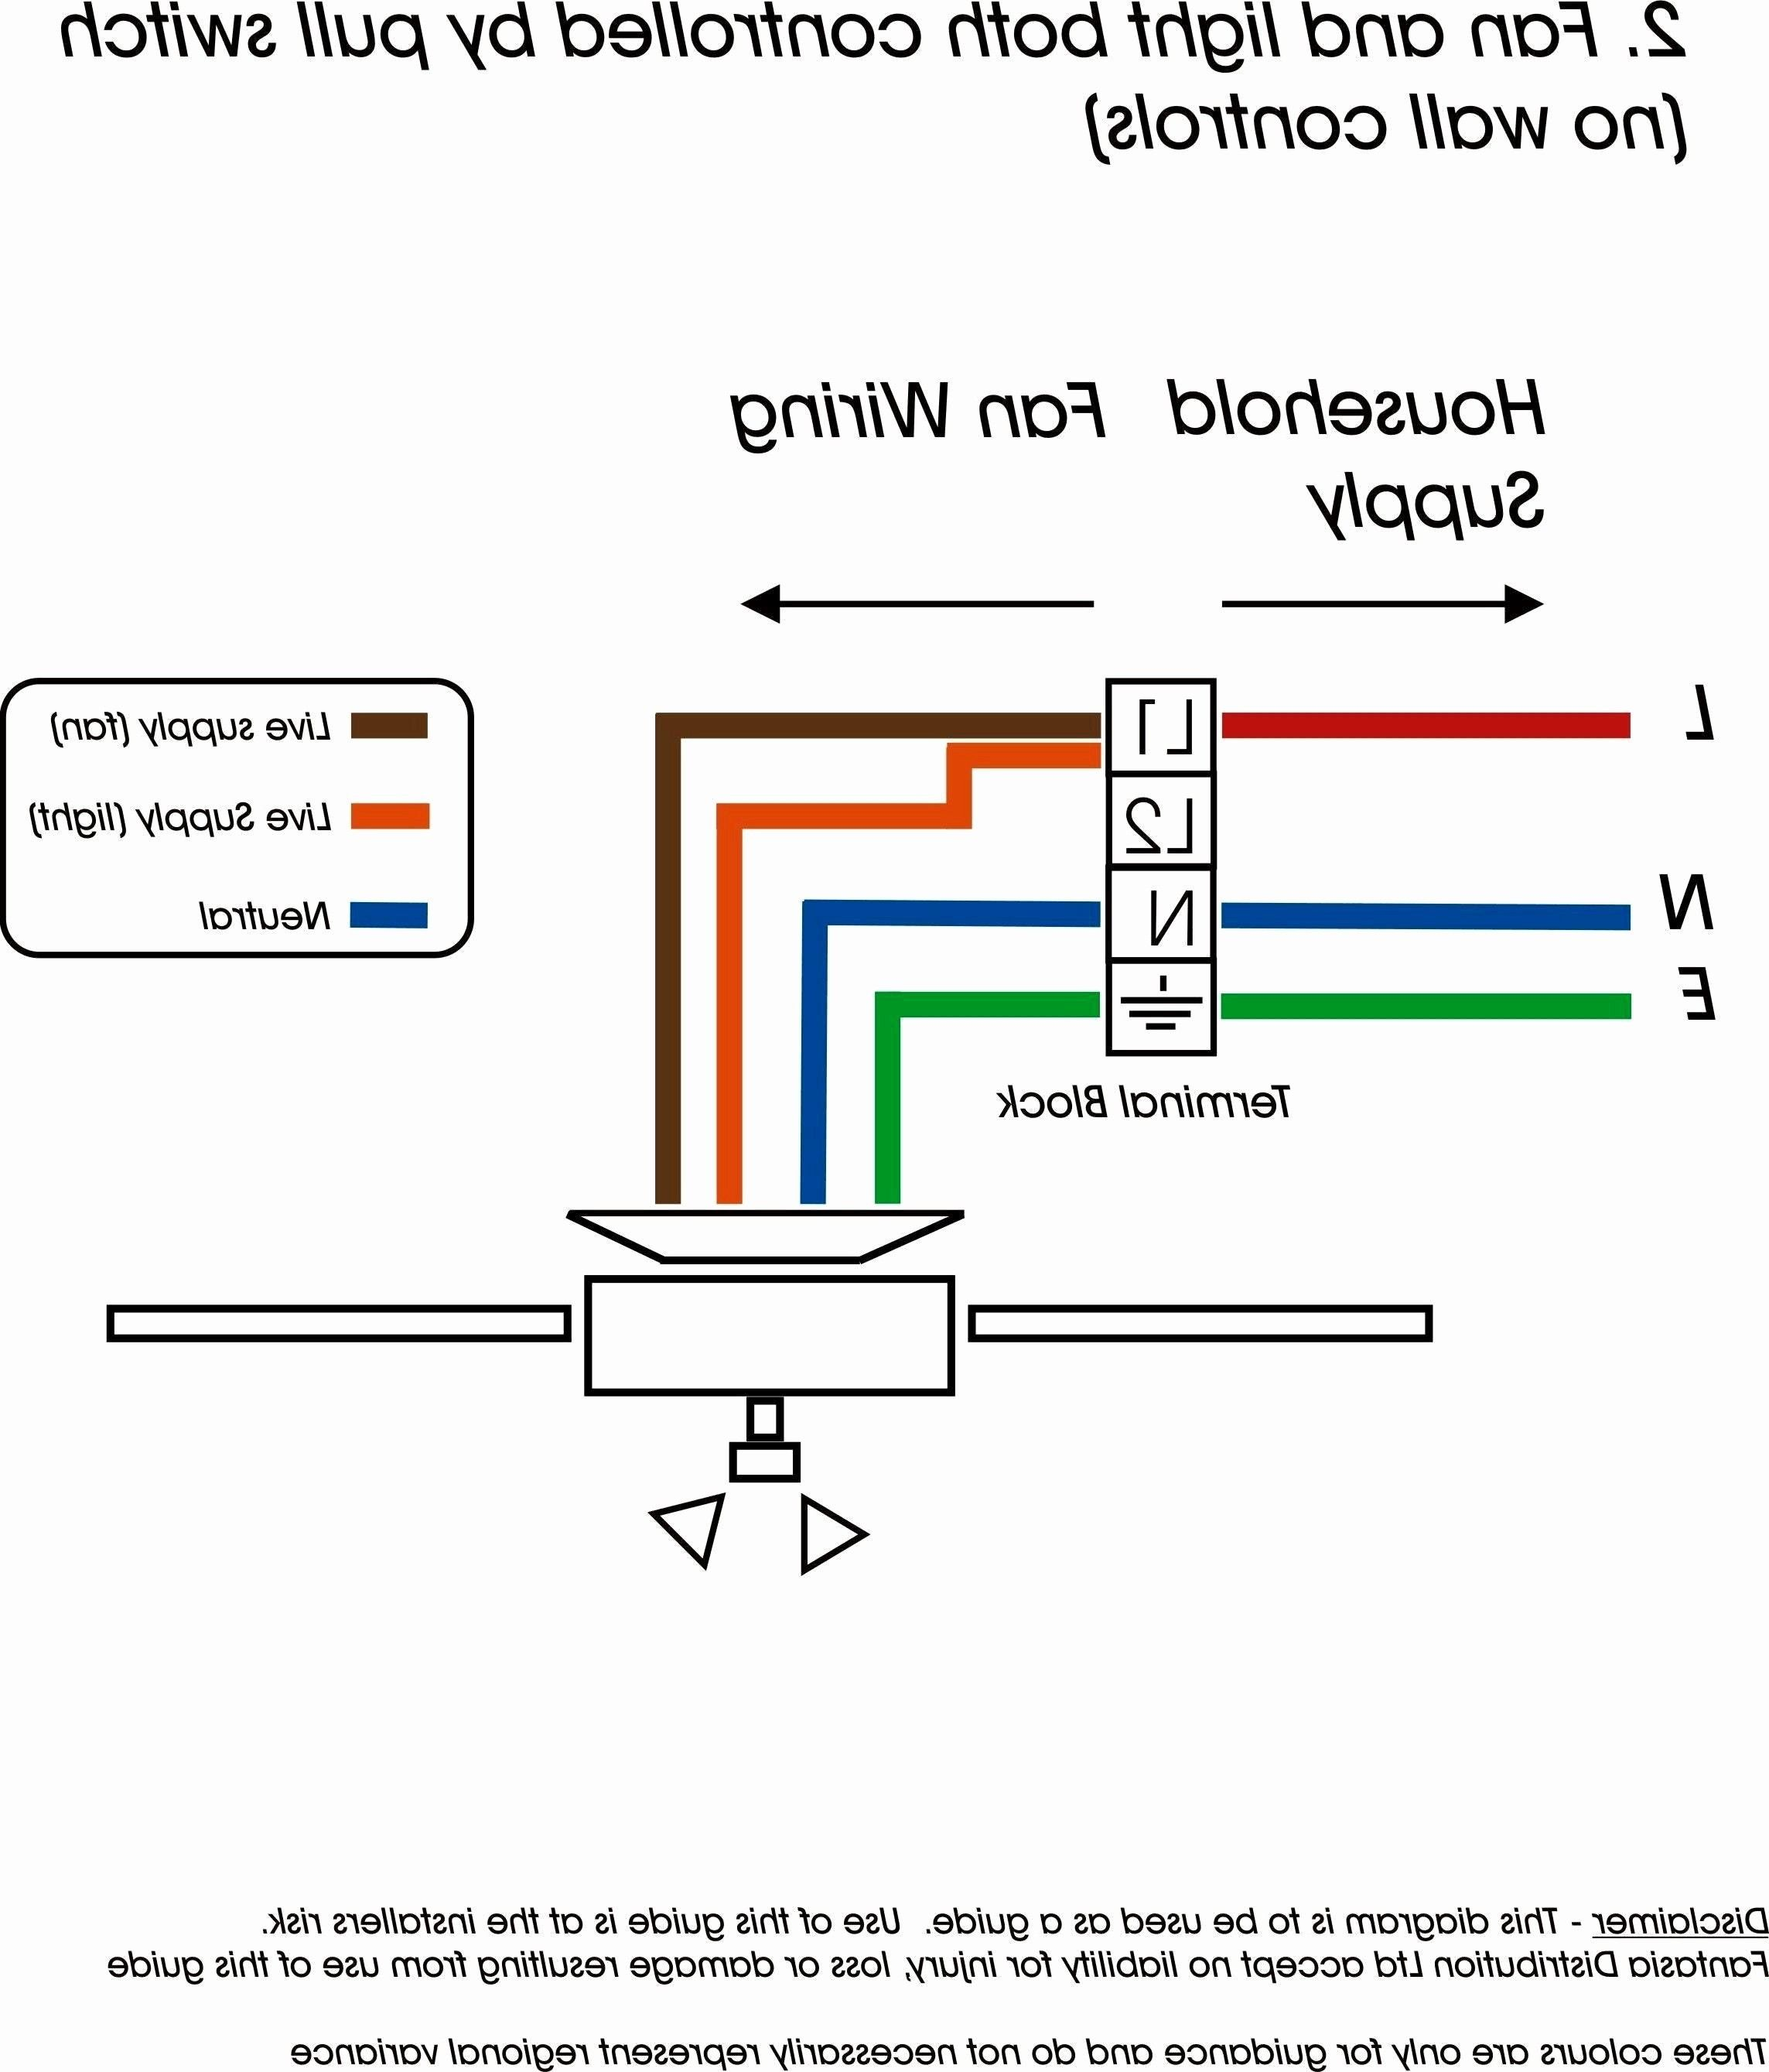 Transfer Switch Wiring Diagram Inspirational In 2020 Light Switch Wiring Ceiling Fan Switch Electrical Wiring Diagram